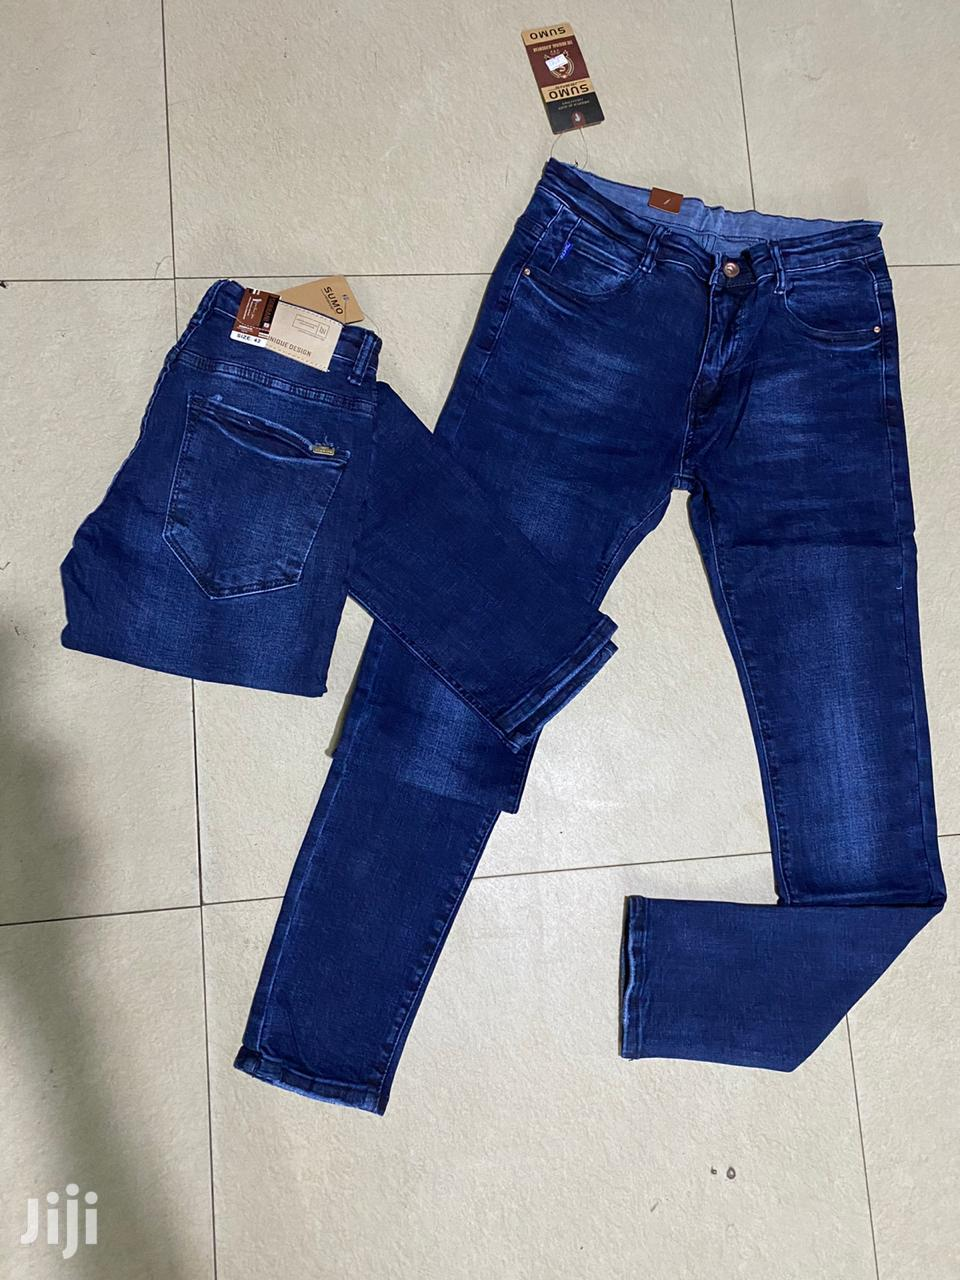 Archive: Jeans Available Different Designs